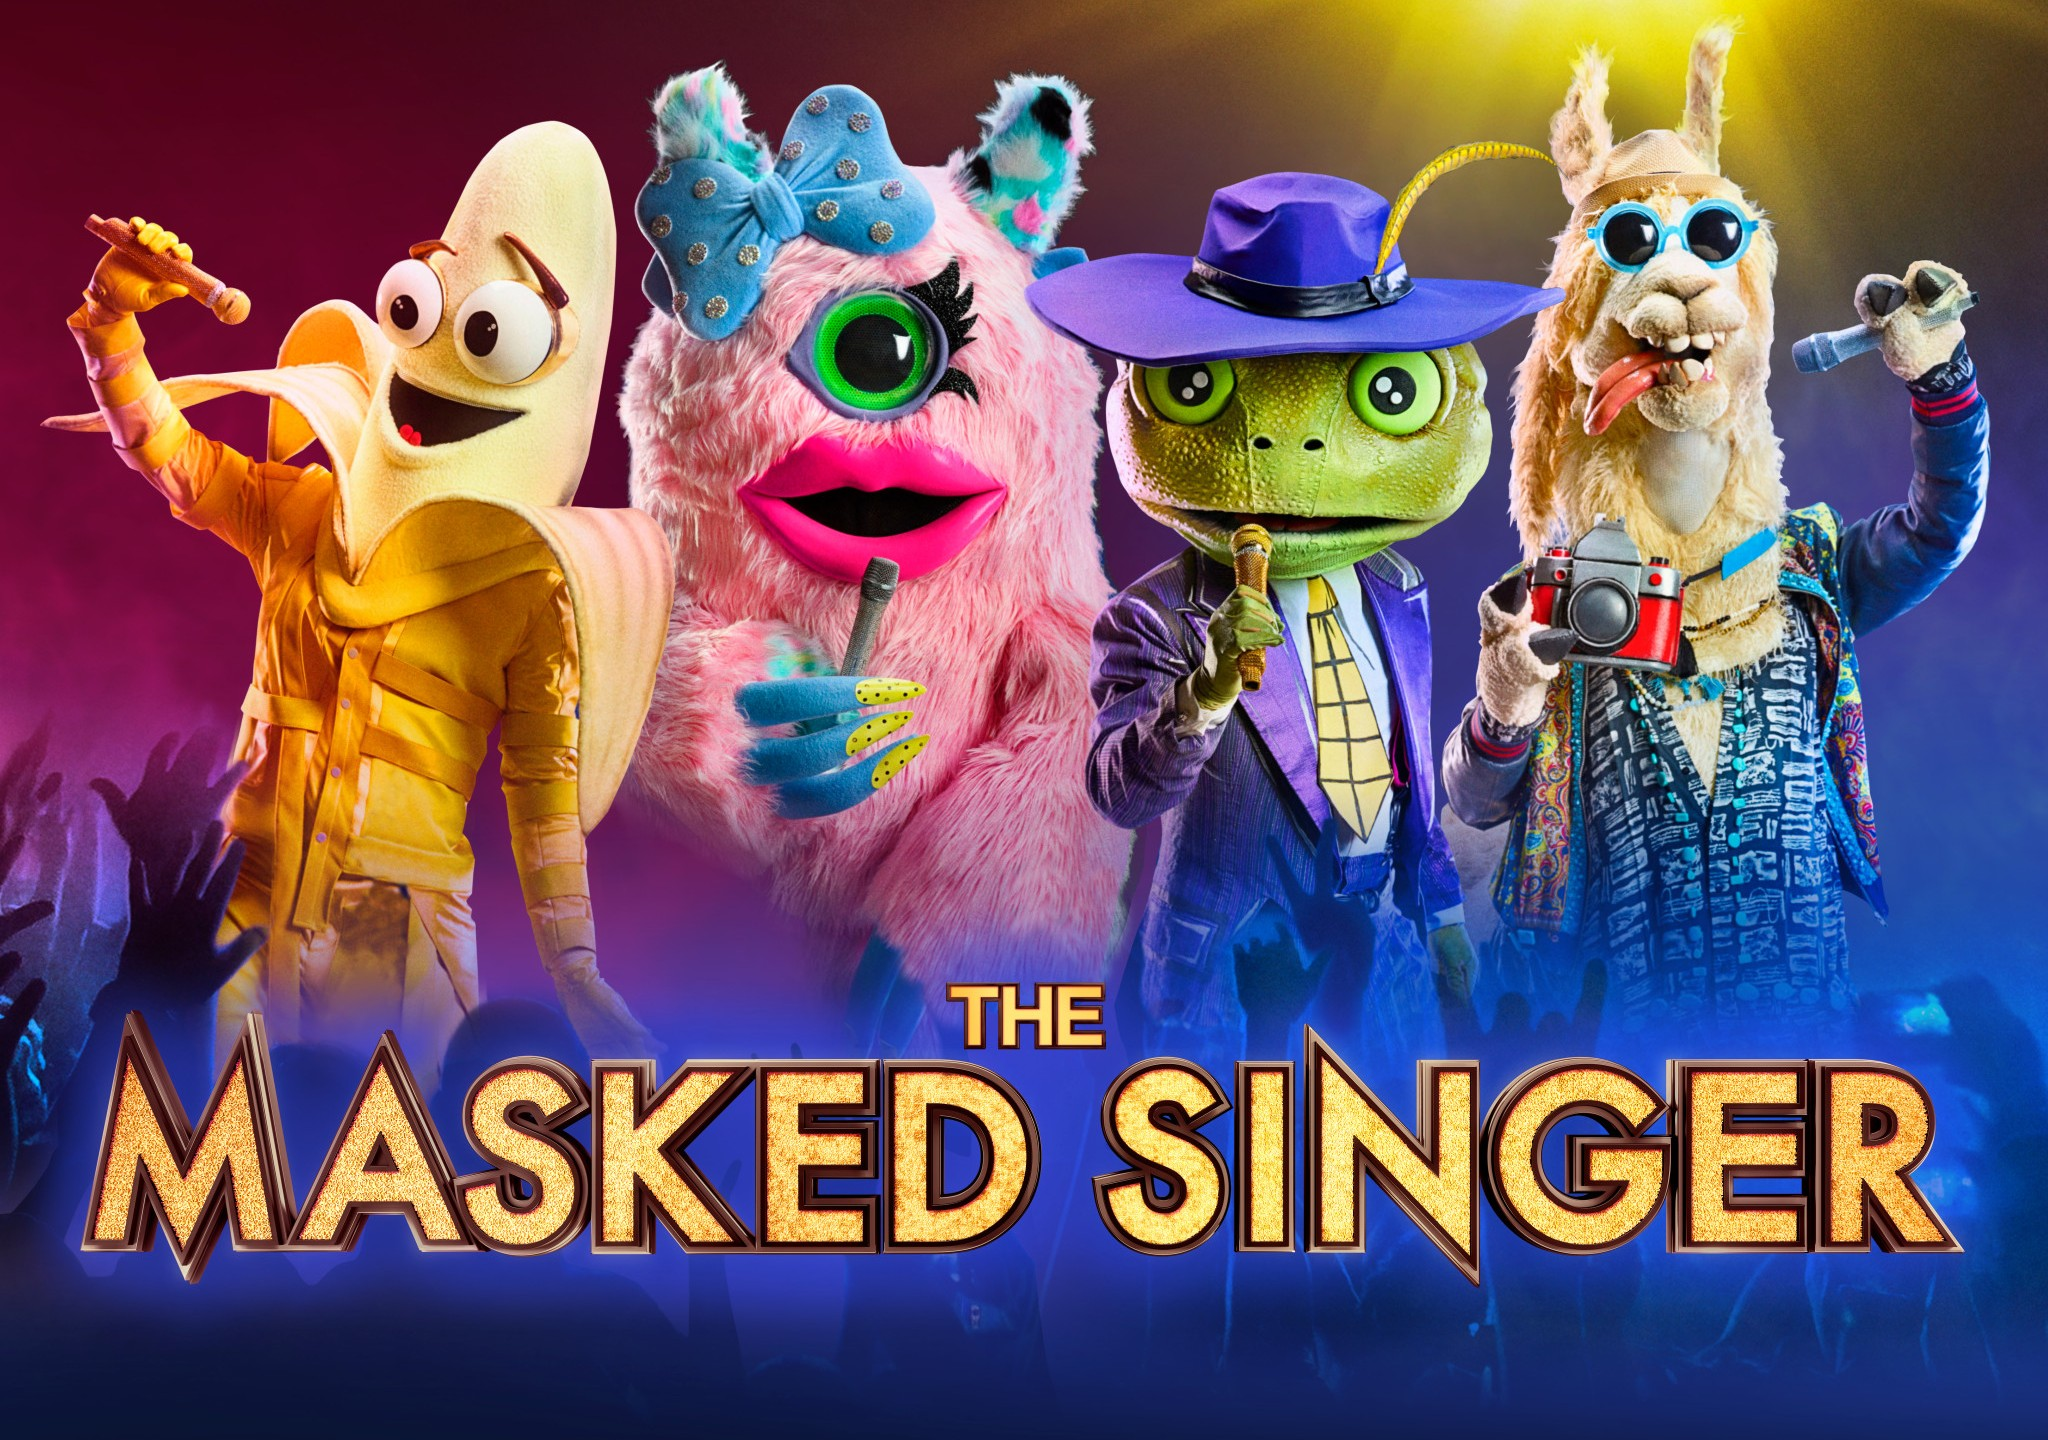 The Masked Singer Announces Summer 2020 Tour With Stop In